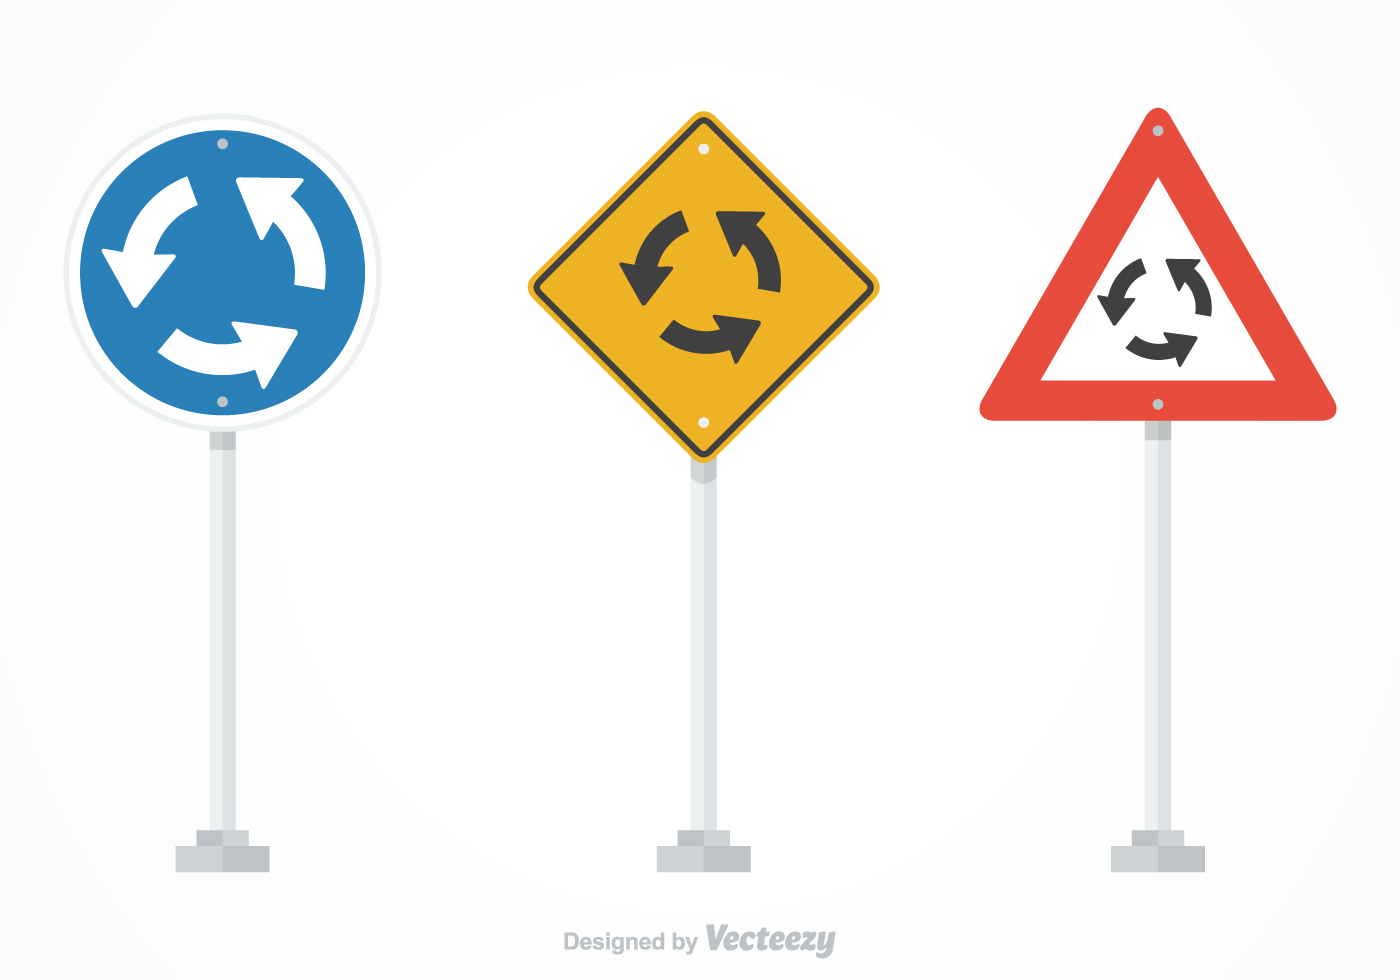 Free Vector Roundabout Traffic Signs - Download Free ...